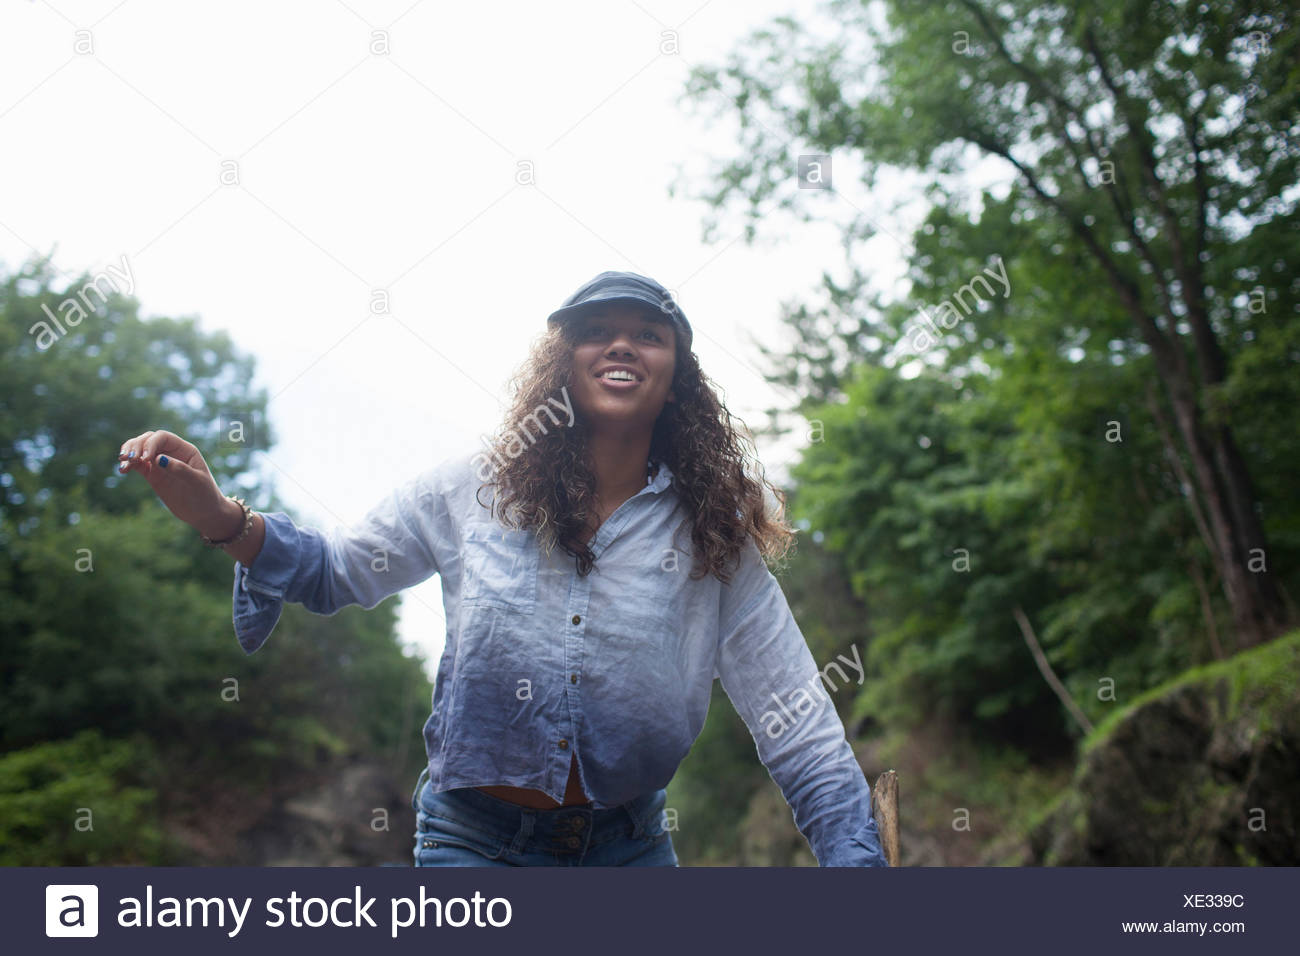 Teenage girl walking outdoors - Stock Image